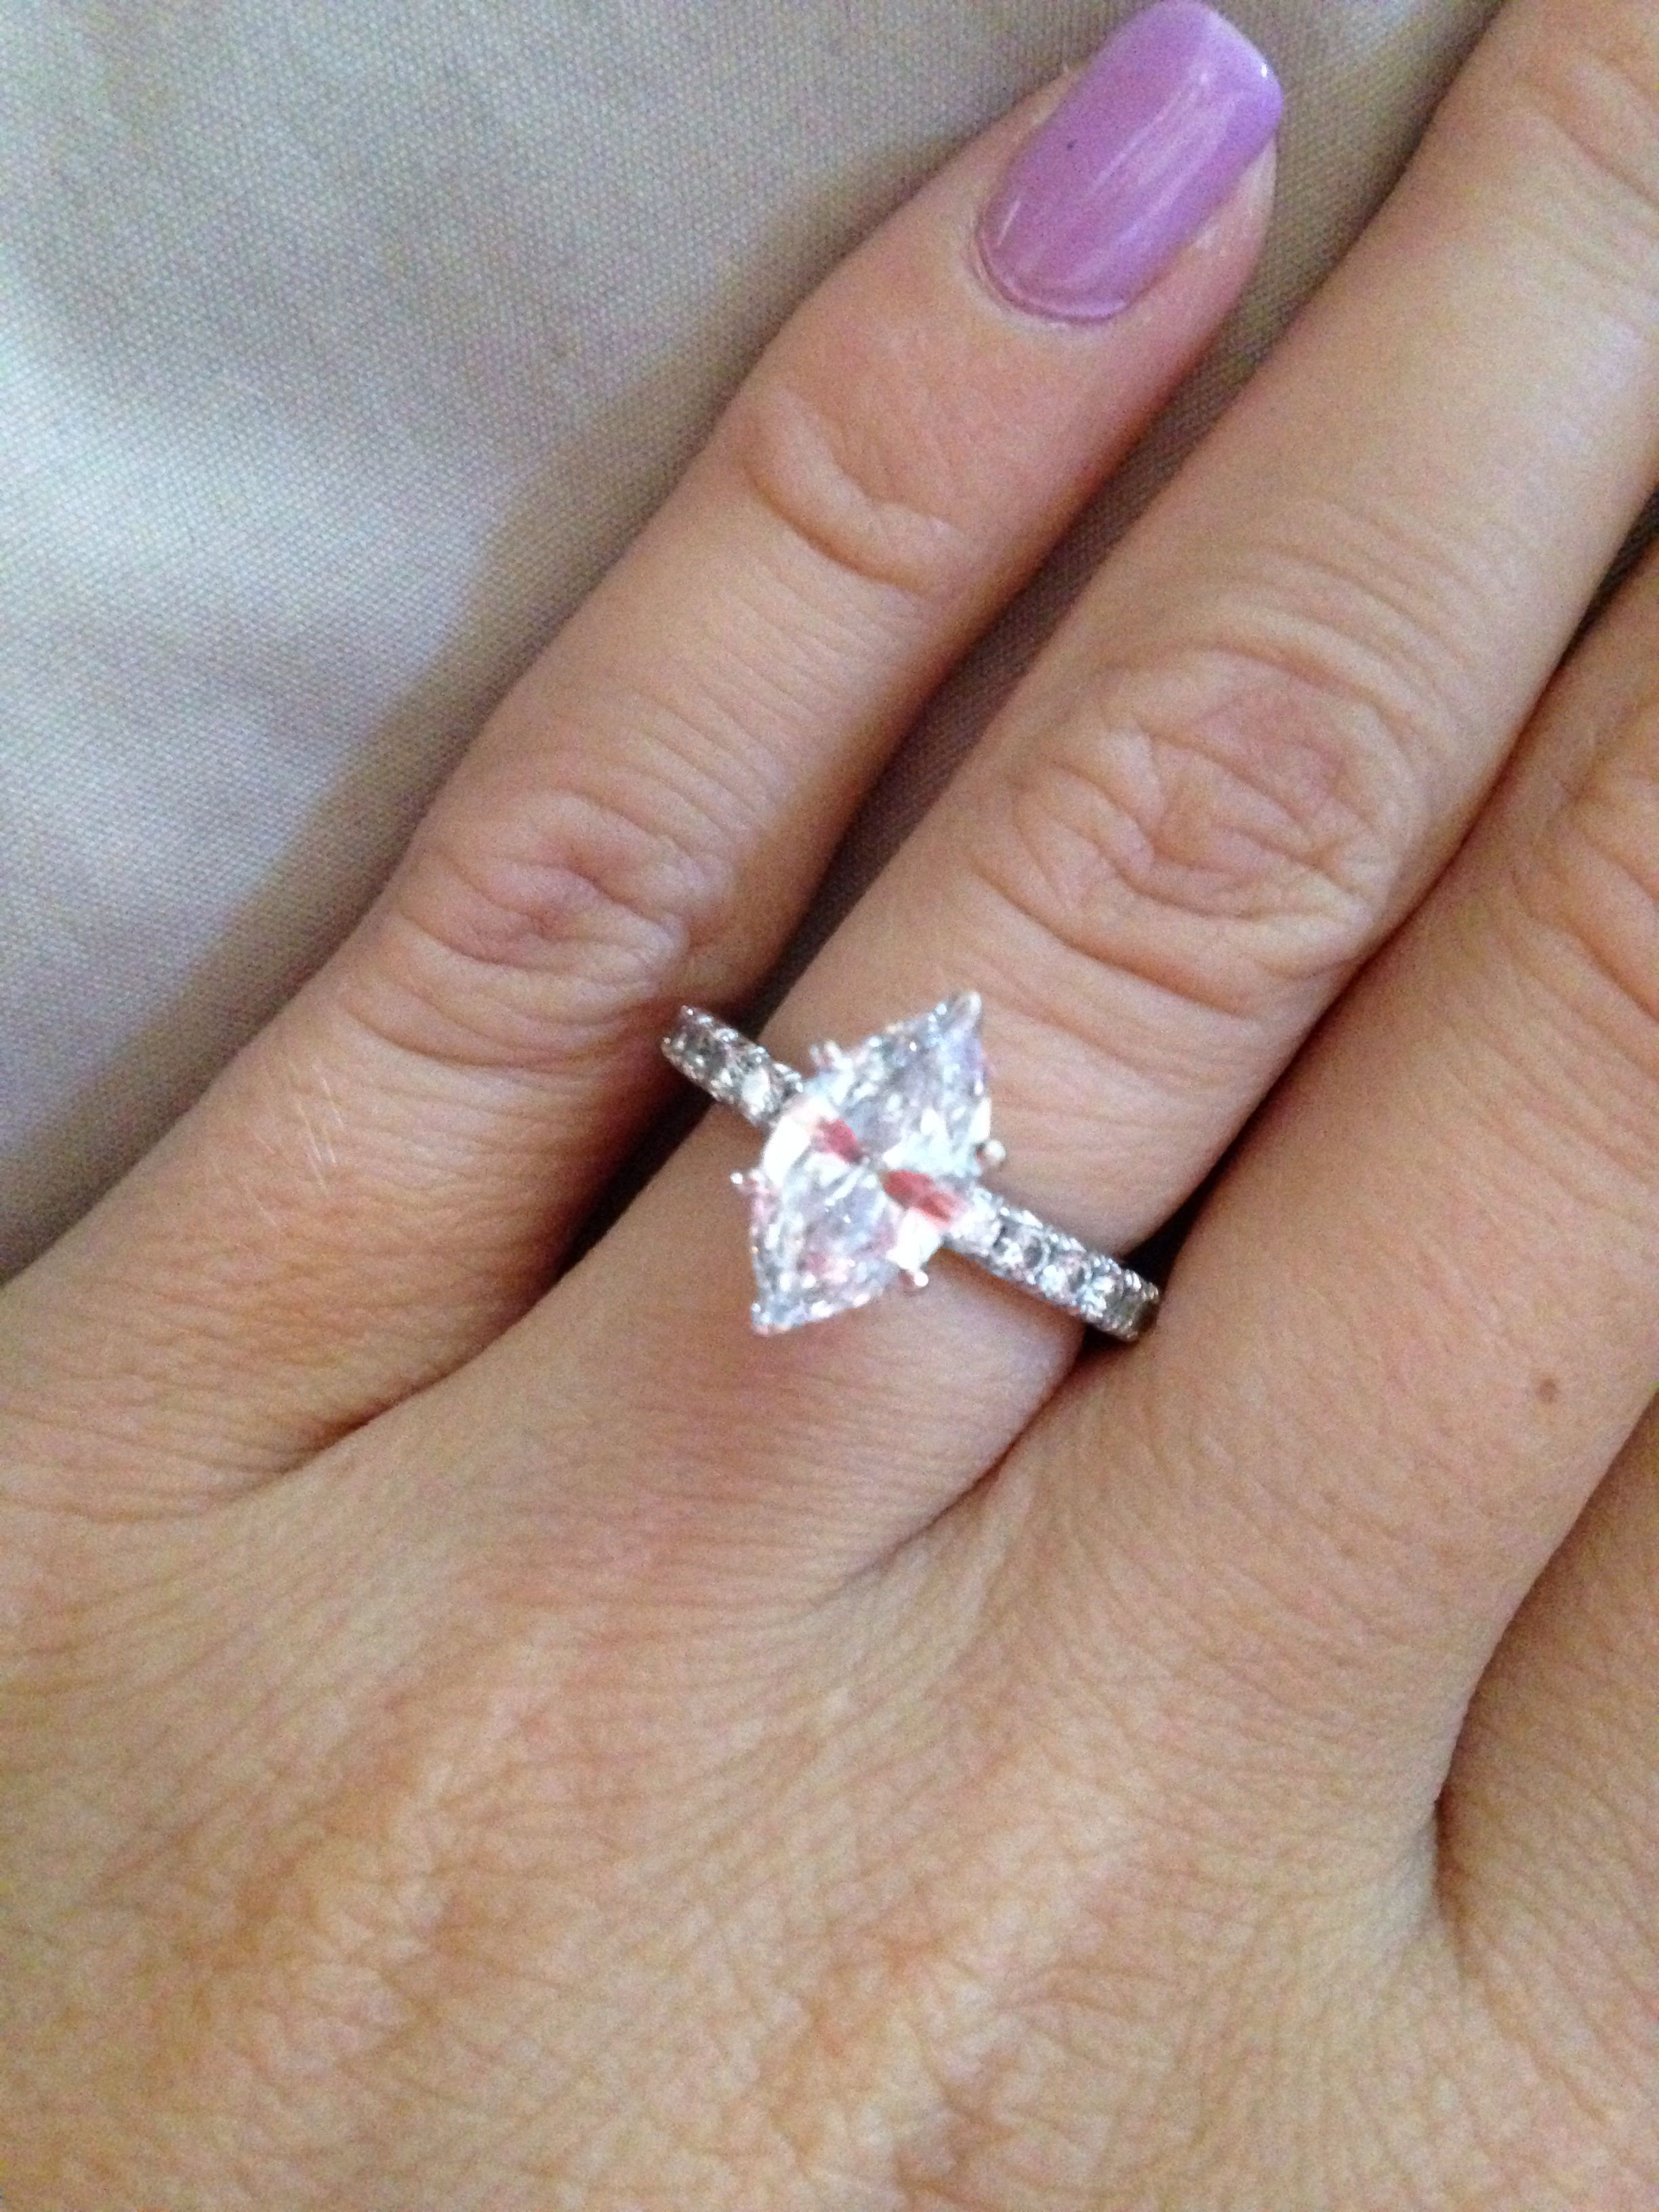 My 1 5 carat solitaire marquise diamond My man did wonderful